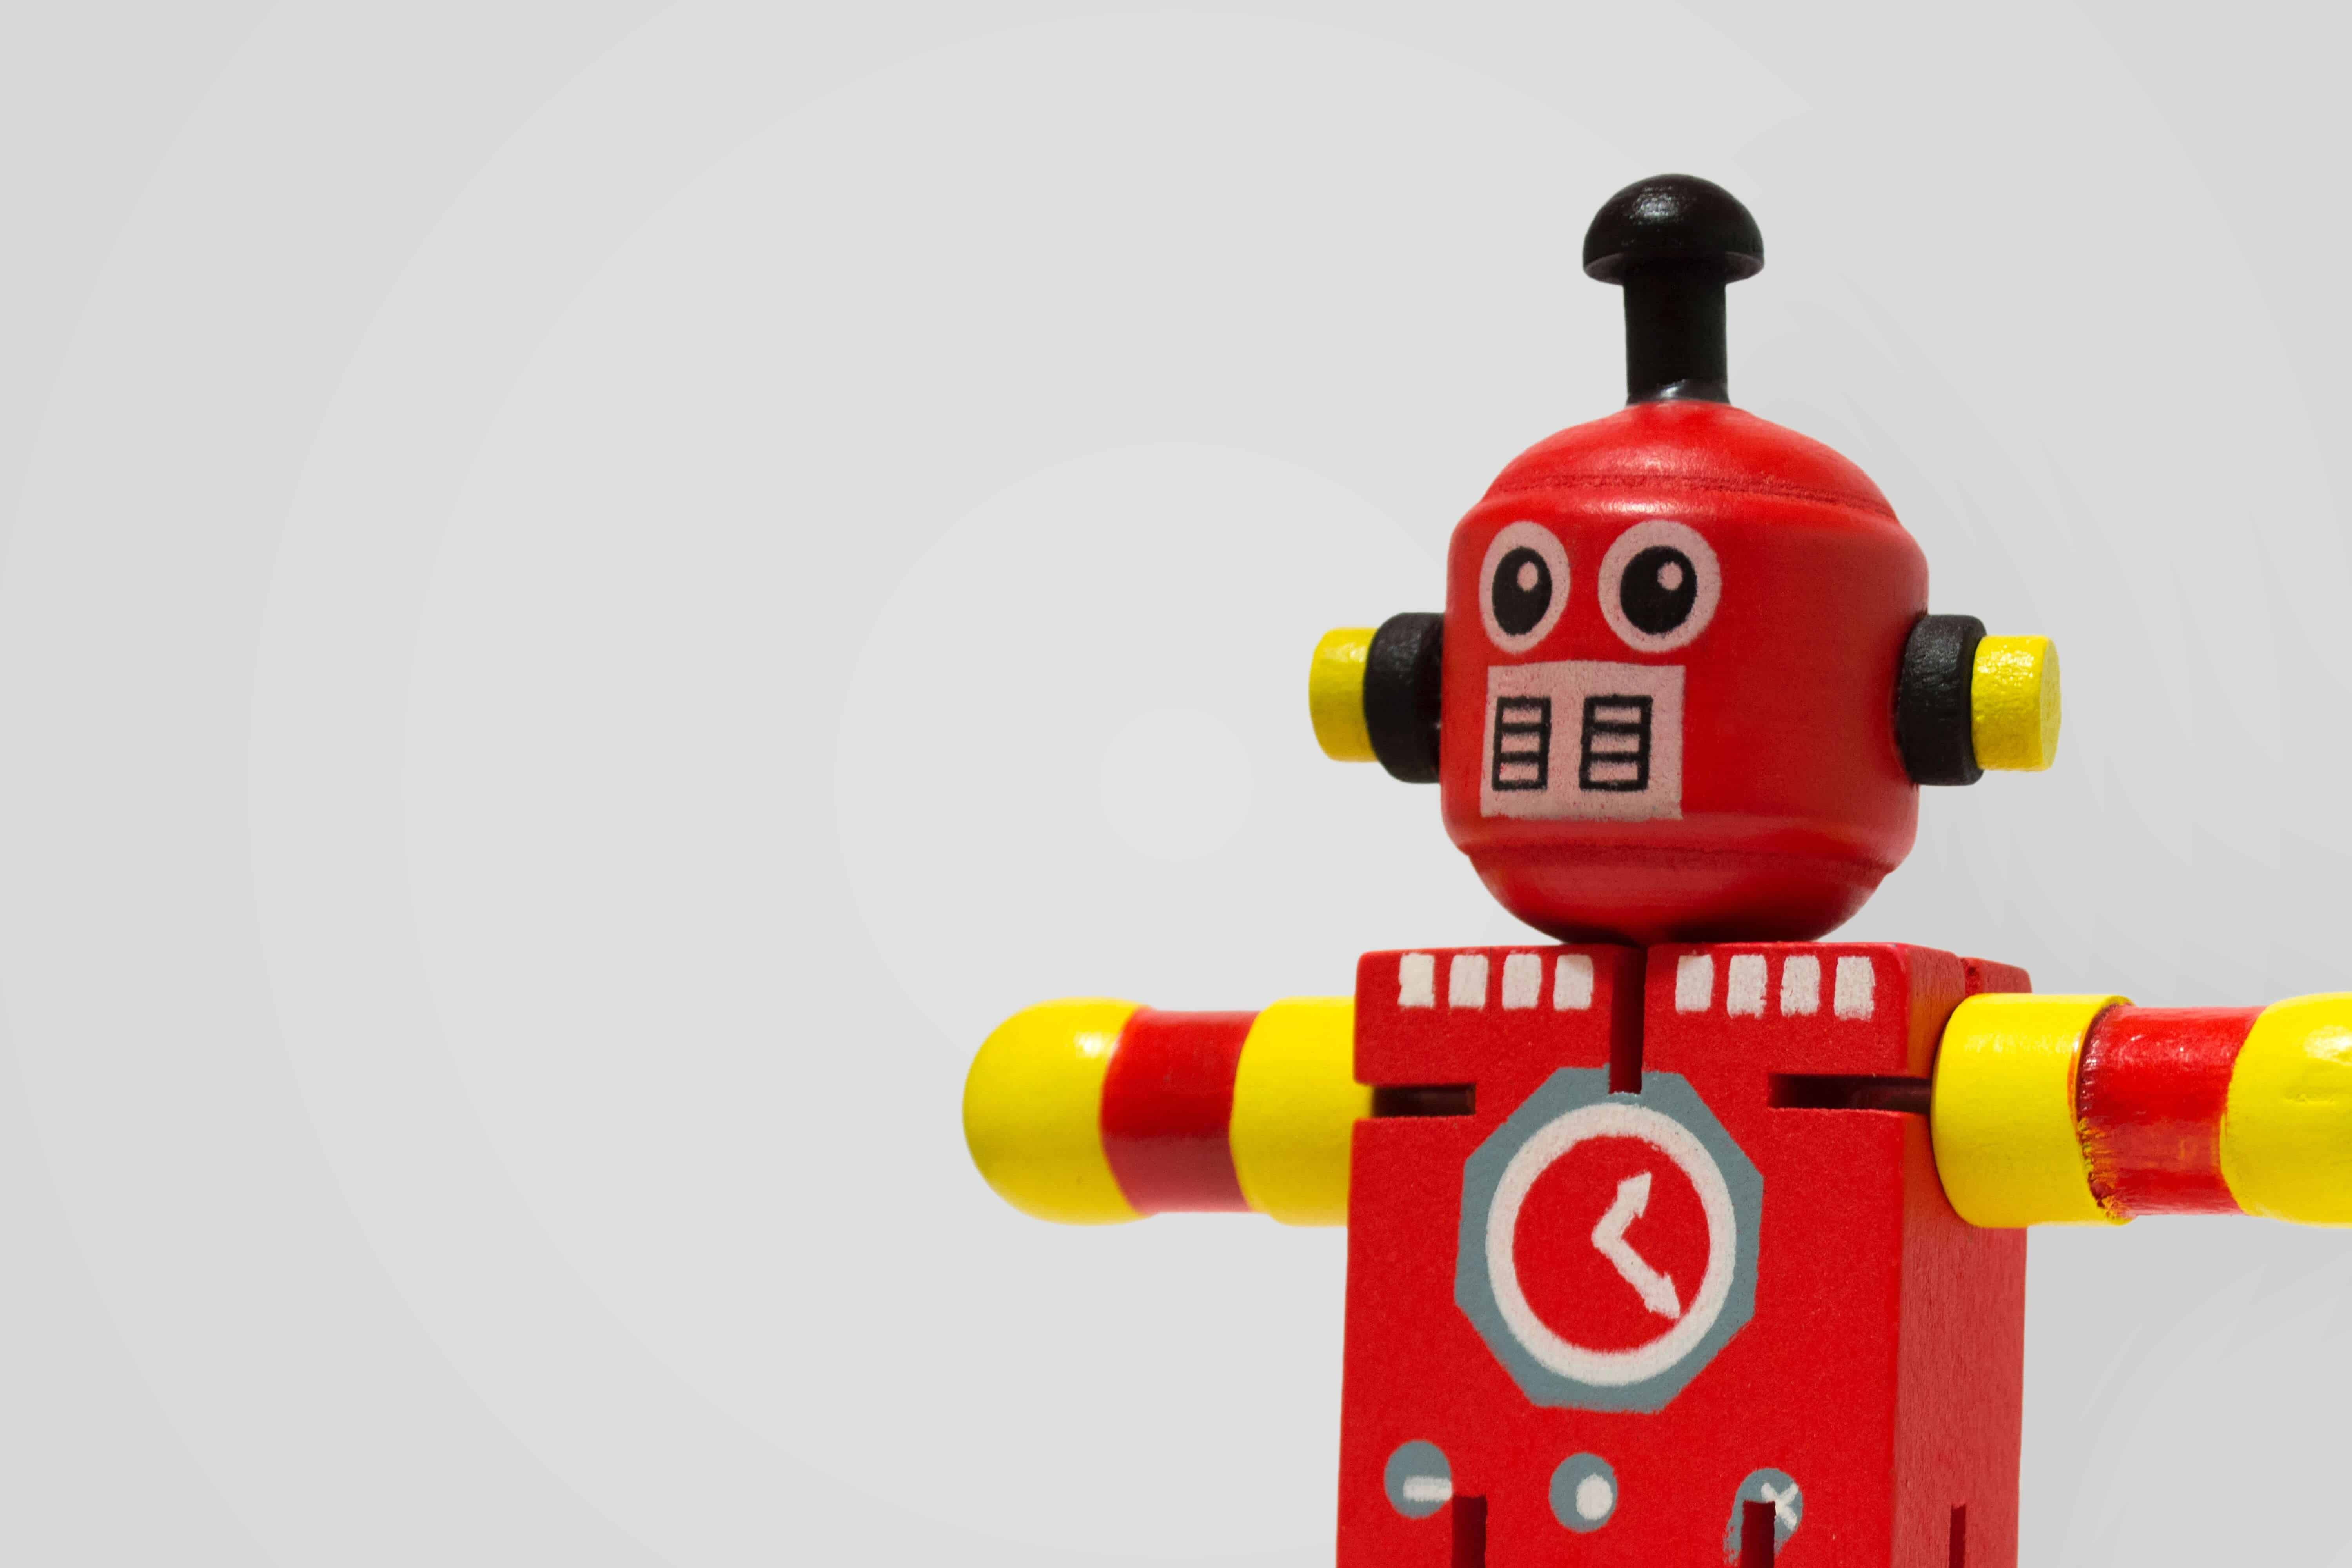 automation in AI and machine learning